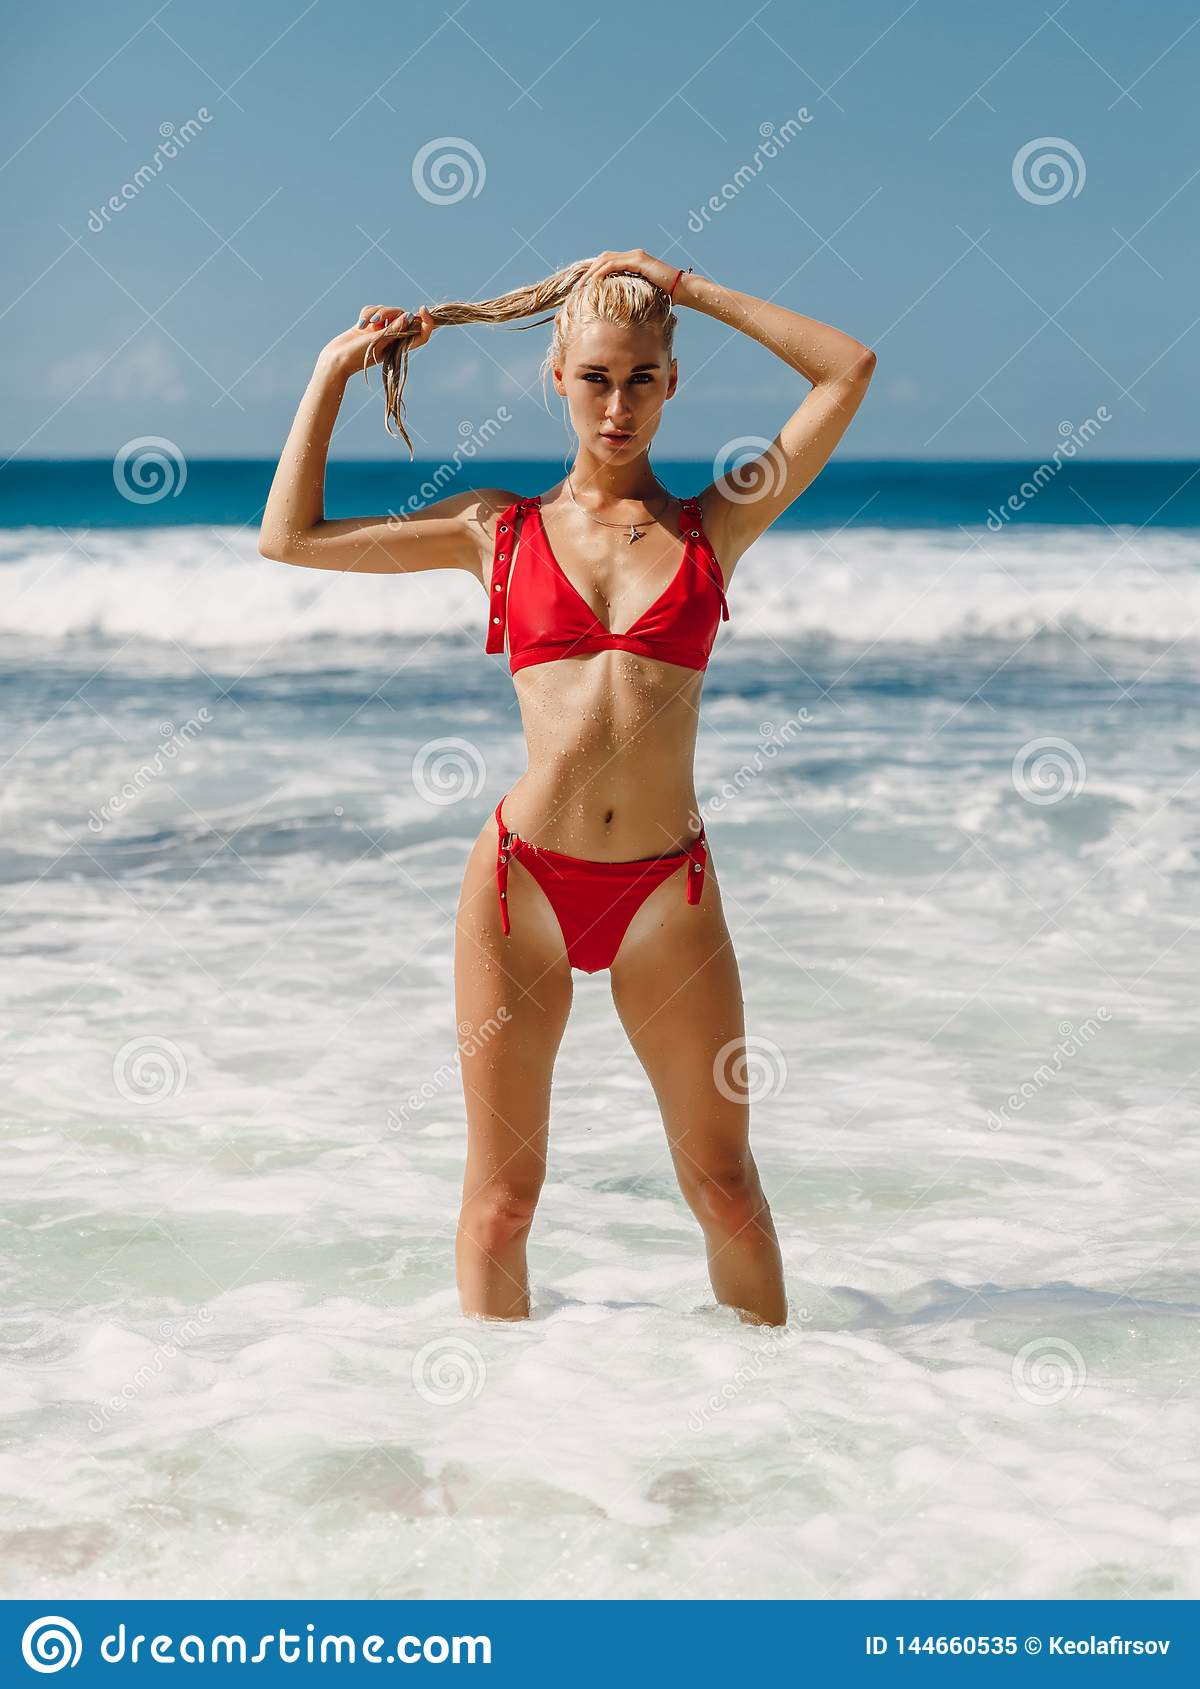 885461a9e3 Attractive Young Woman In Swimwear At Ocean Beach Stock Image ...